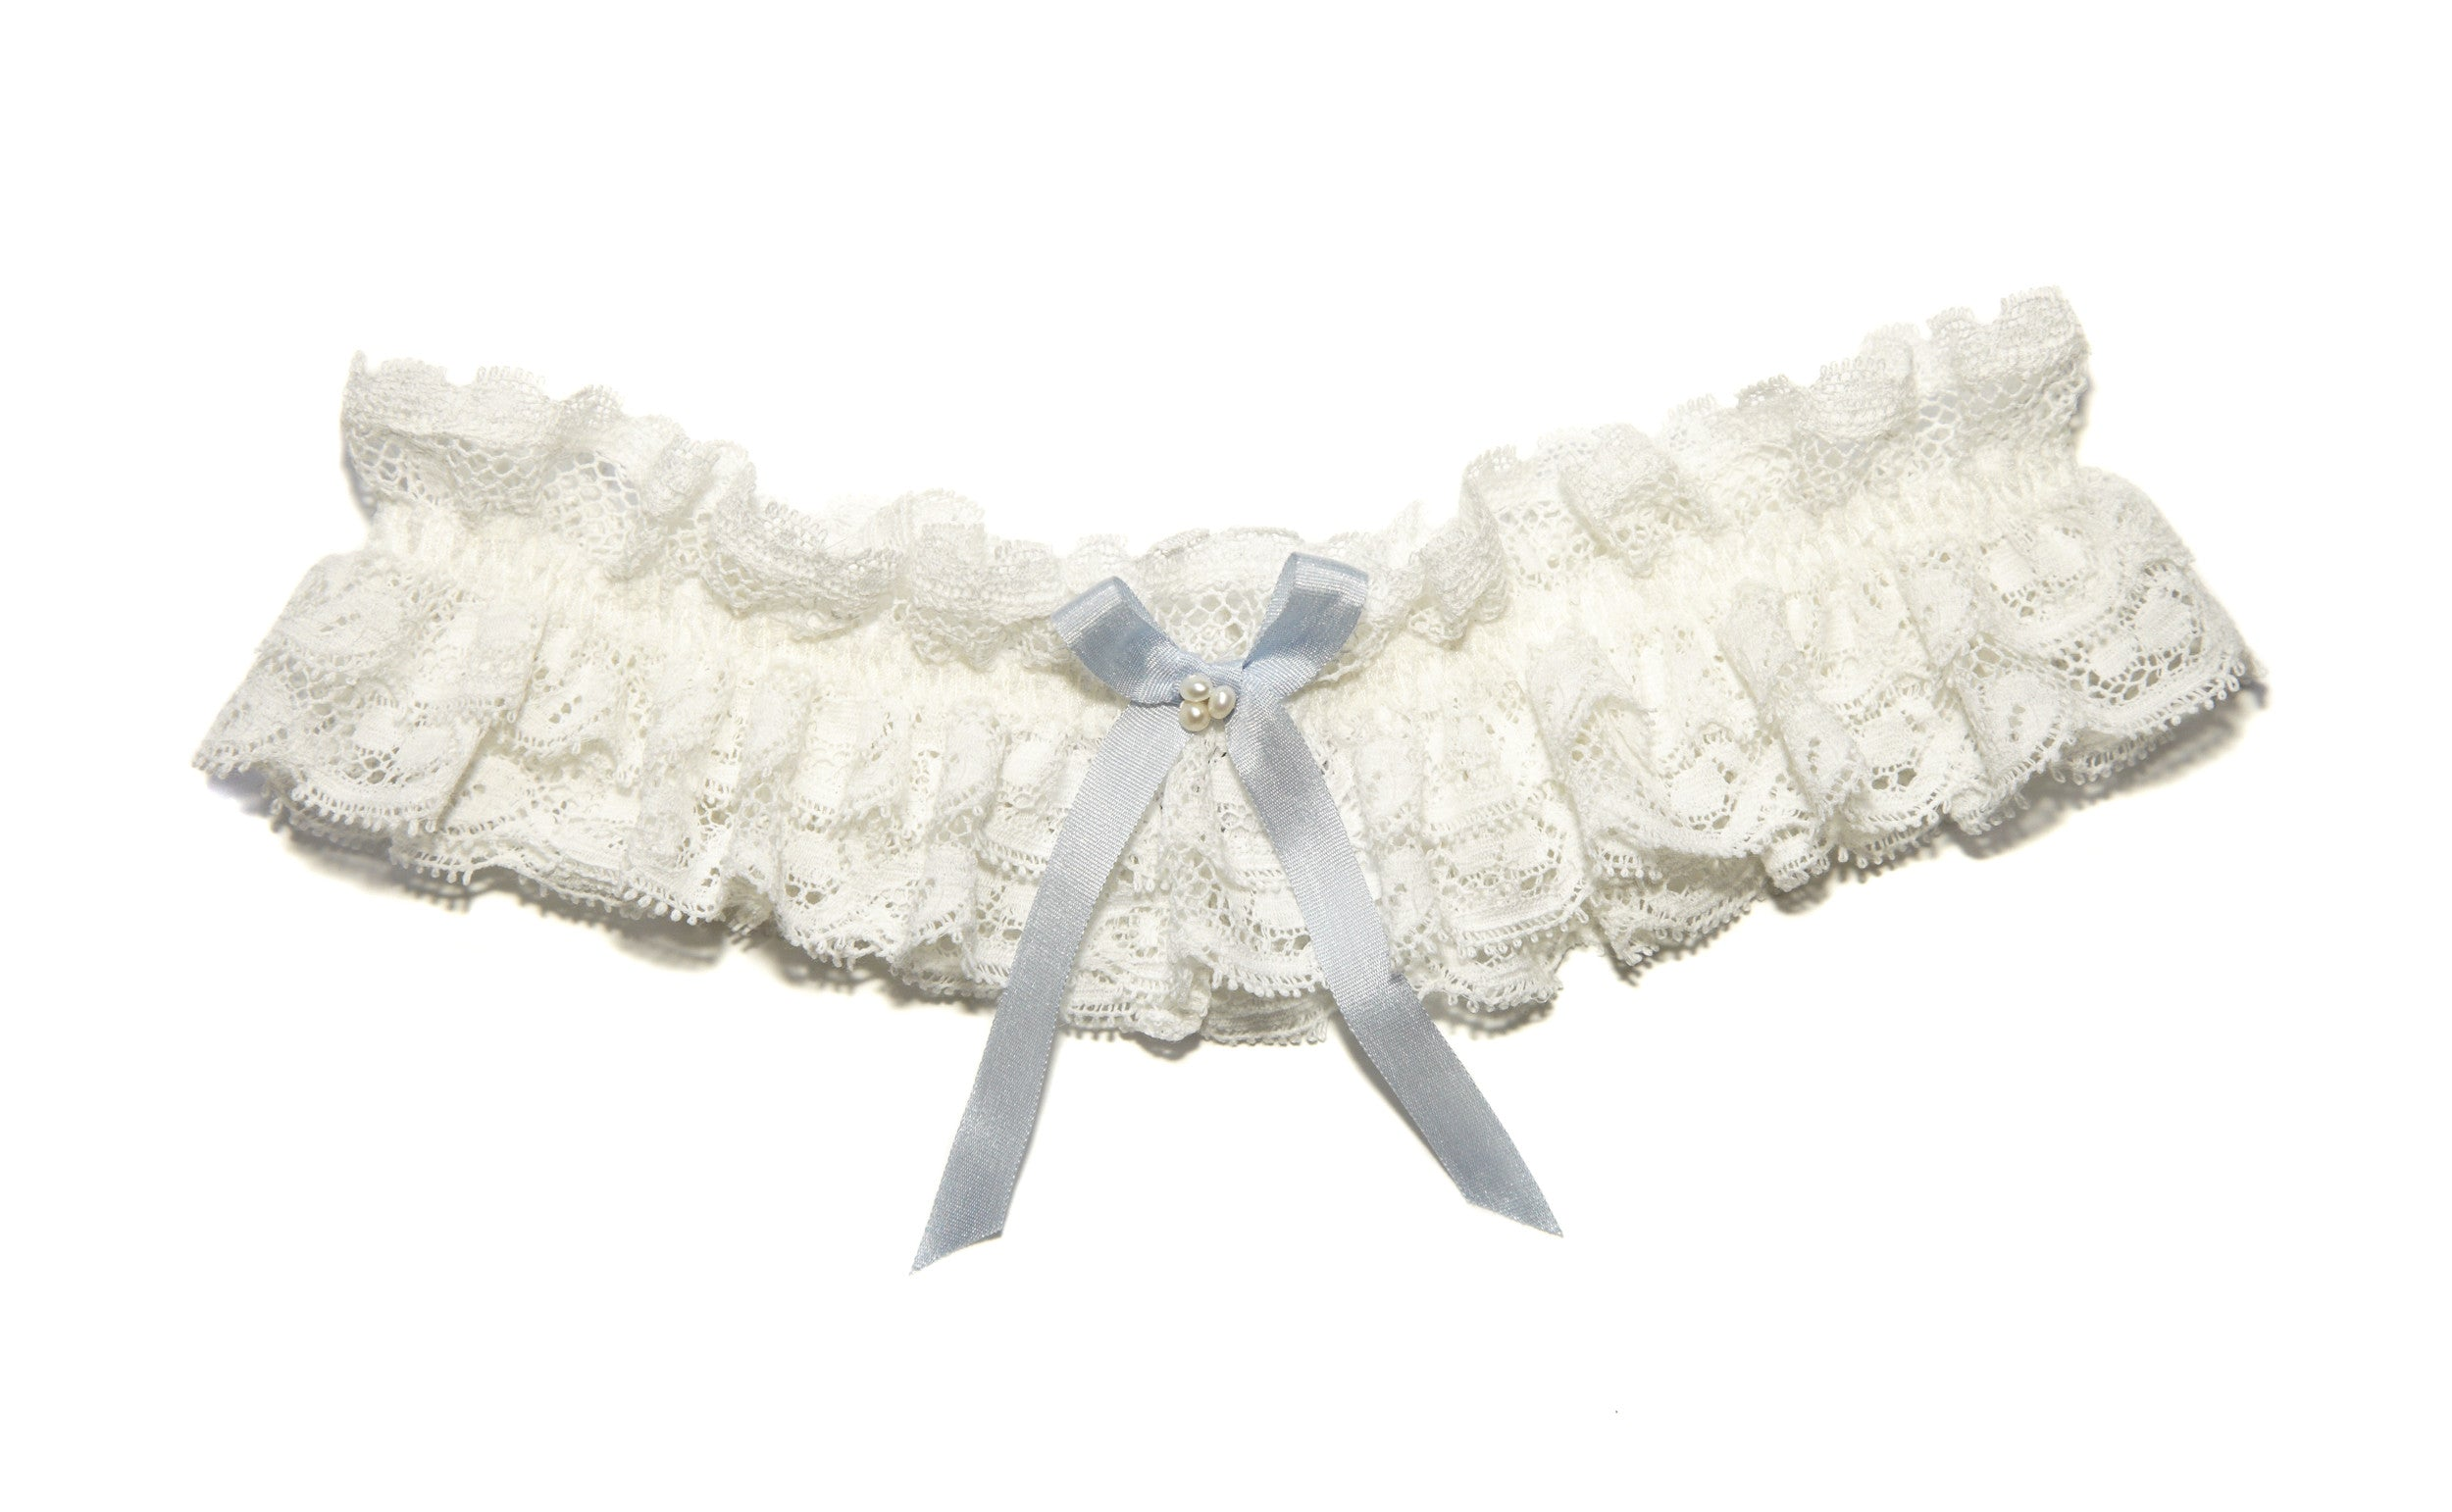 Luella Ivory Lace Wedding Garter with pearls and Something Blue Silk Bow, Luxury wedding garter, Ivory Lace Garter, Ivory Lace Bridal Garter, Silk Wedding Garter, Something Blue Garter